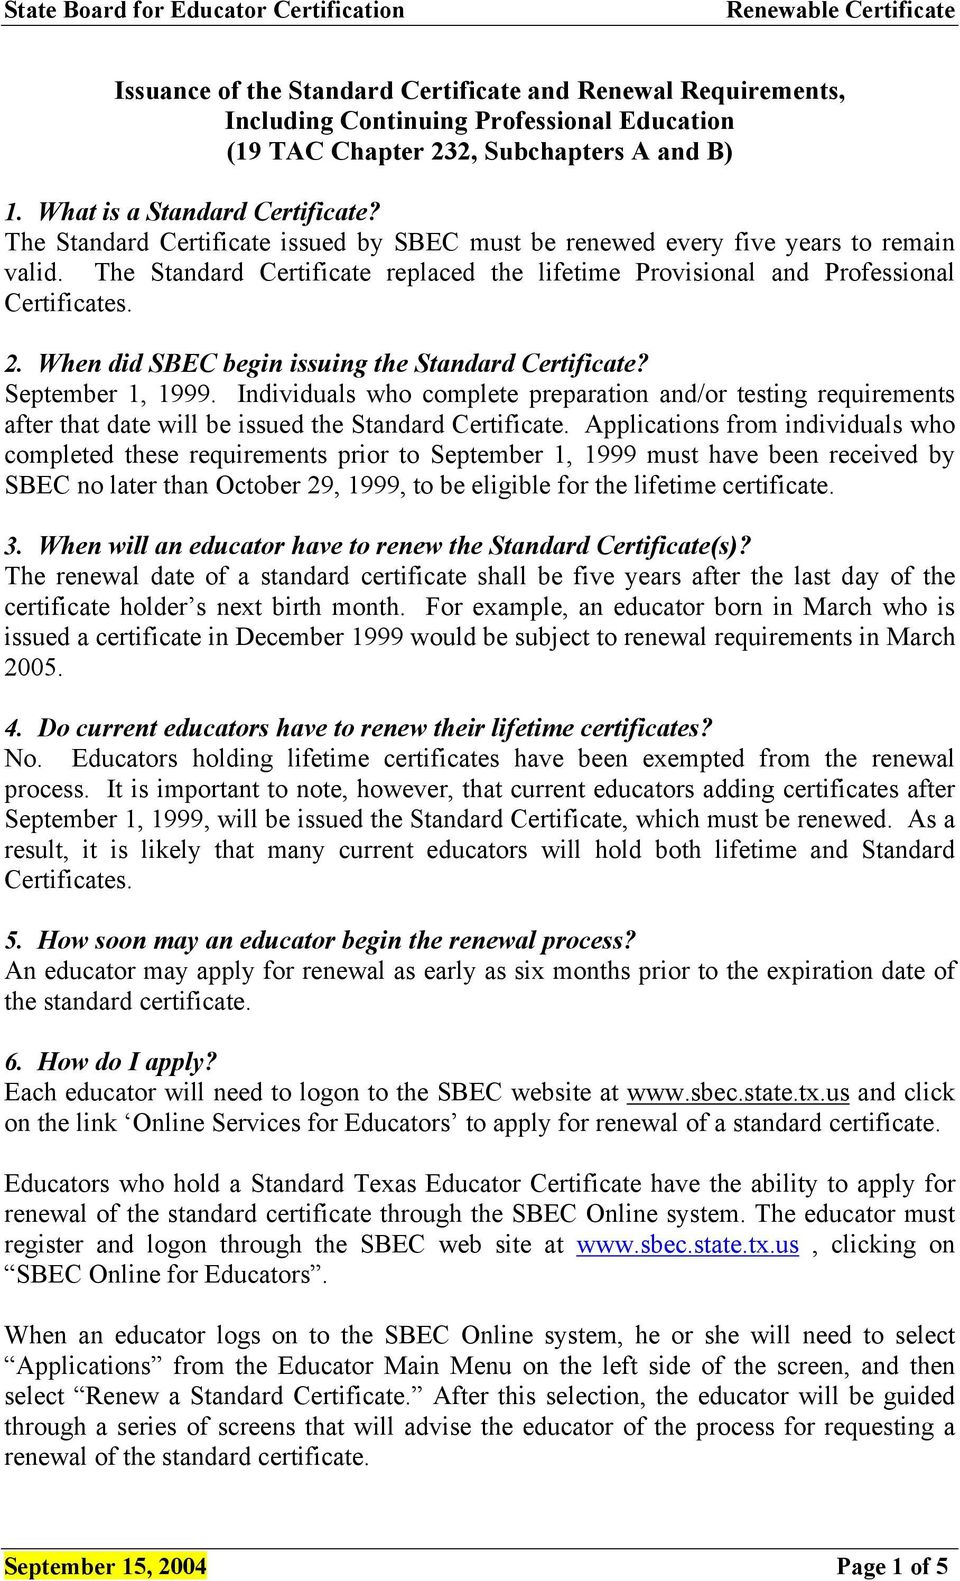 When did SBEC begin issuing the Standard Certificate? September 1, 1999. Individuals who complete preparation and/or testing requirements after that date will be issued the Standard Certificate.